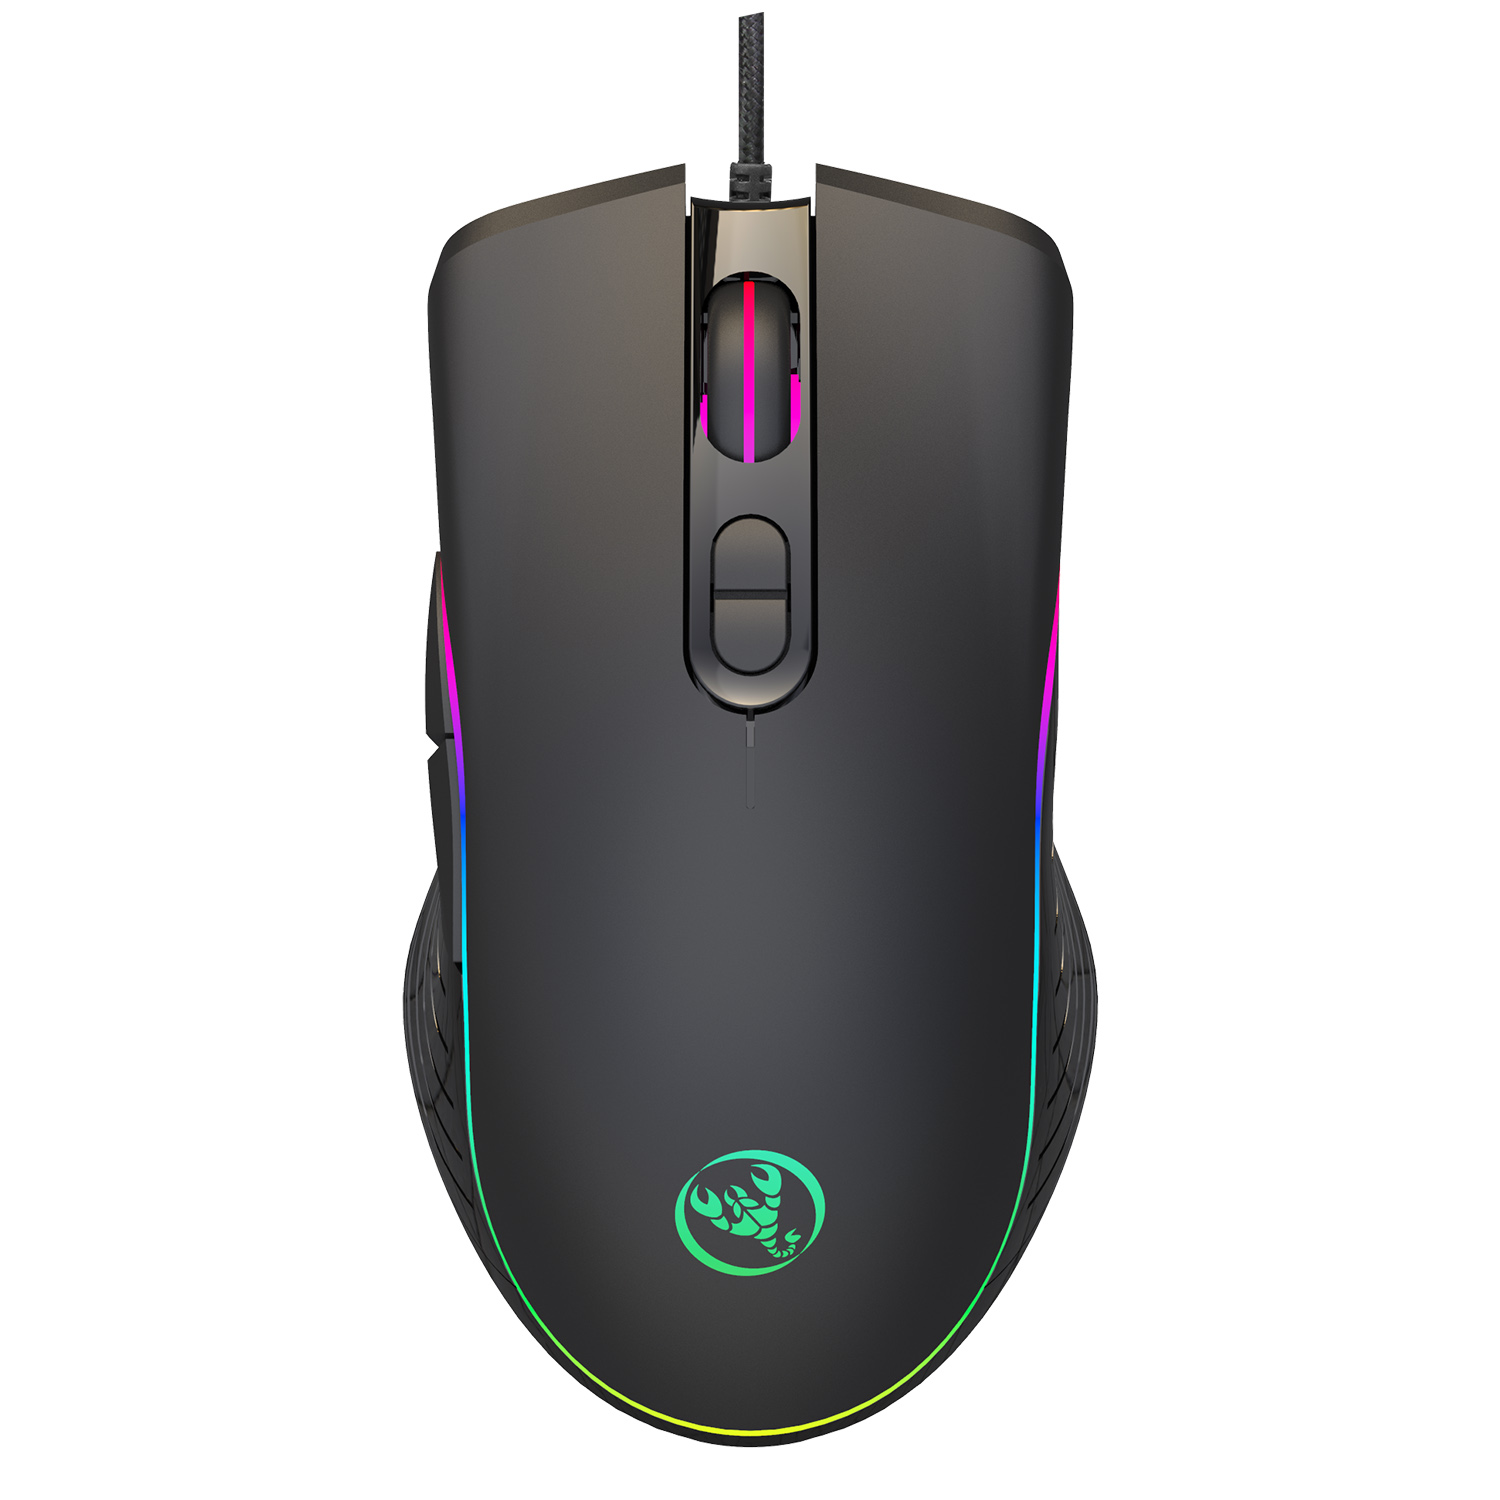 RGB BACKLIT PROGRAMMABLE GAMING MOUSE WIRED USB 6400DPI LAPTOP 7 BUTTONS OPTICAL